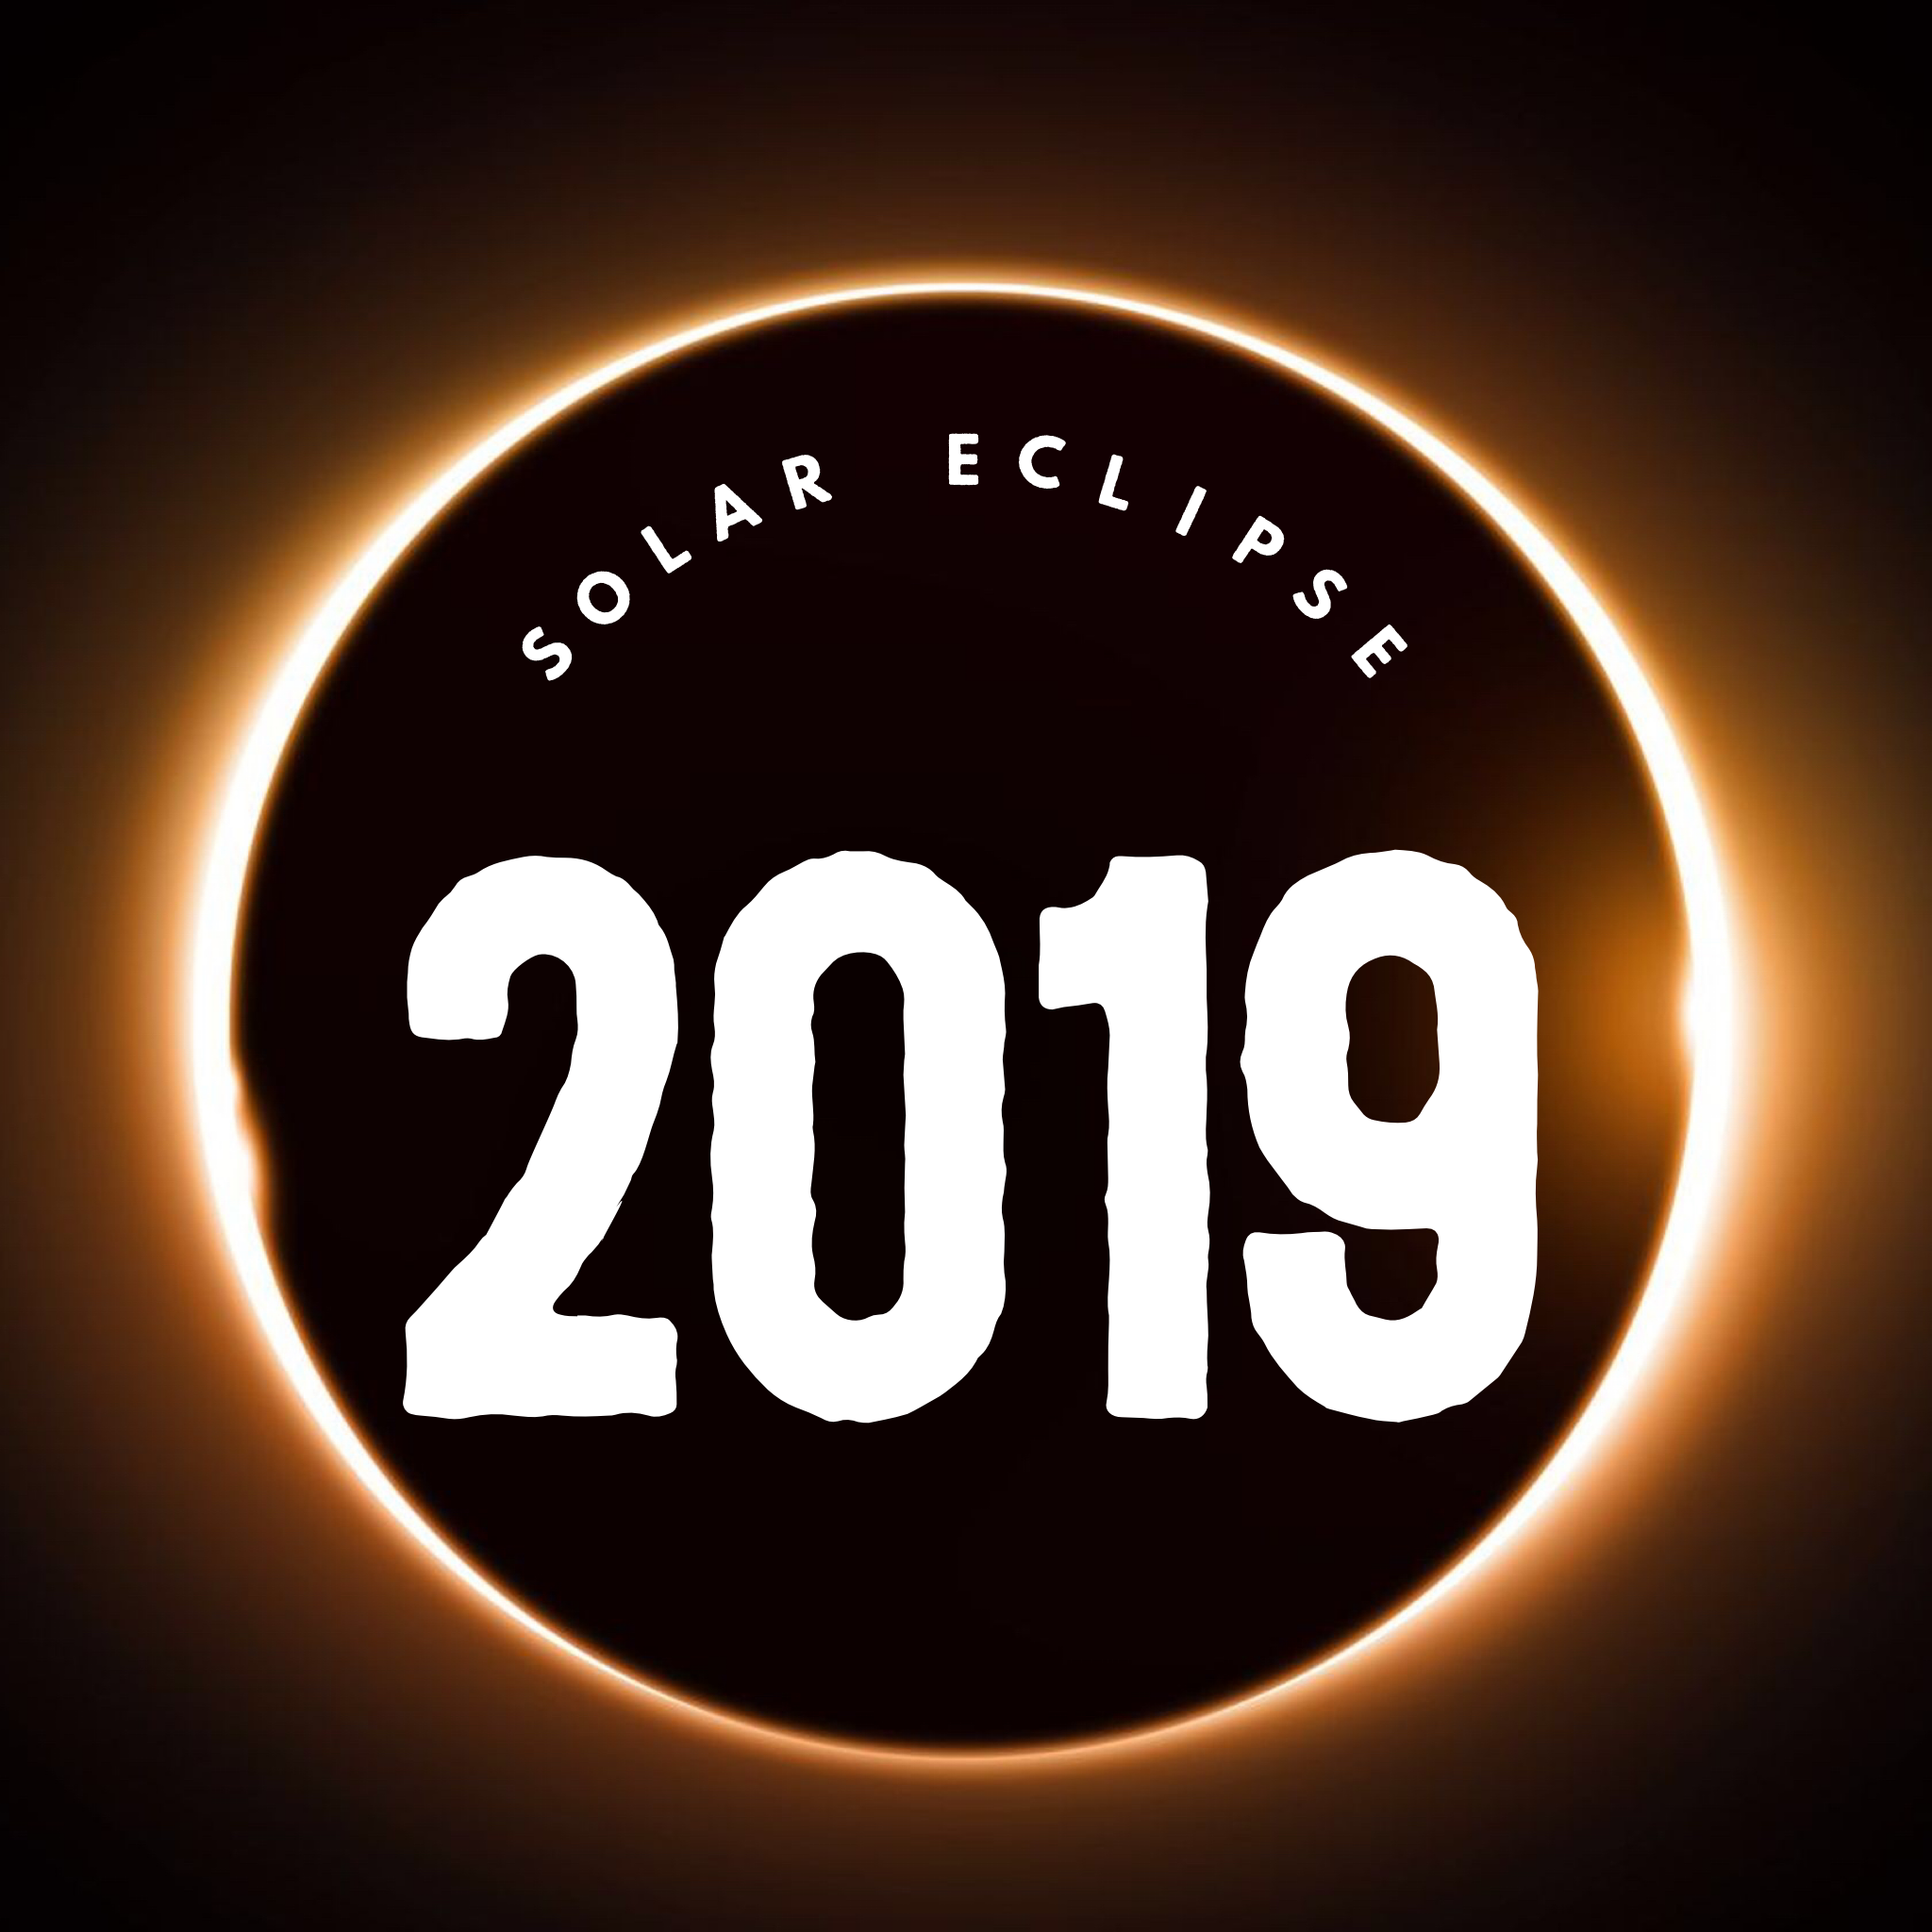 eclipse2019.jpg